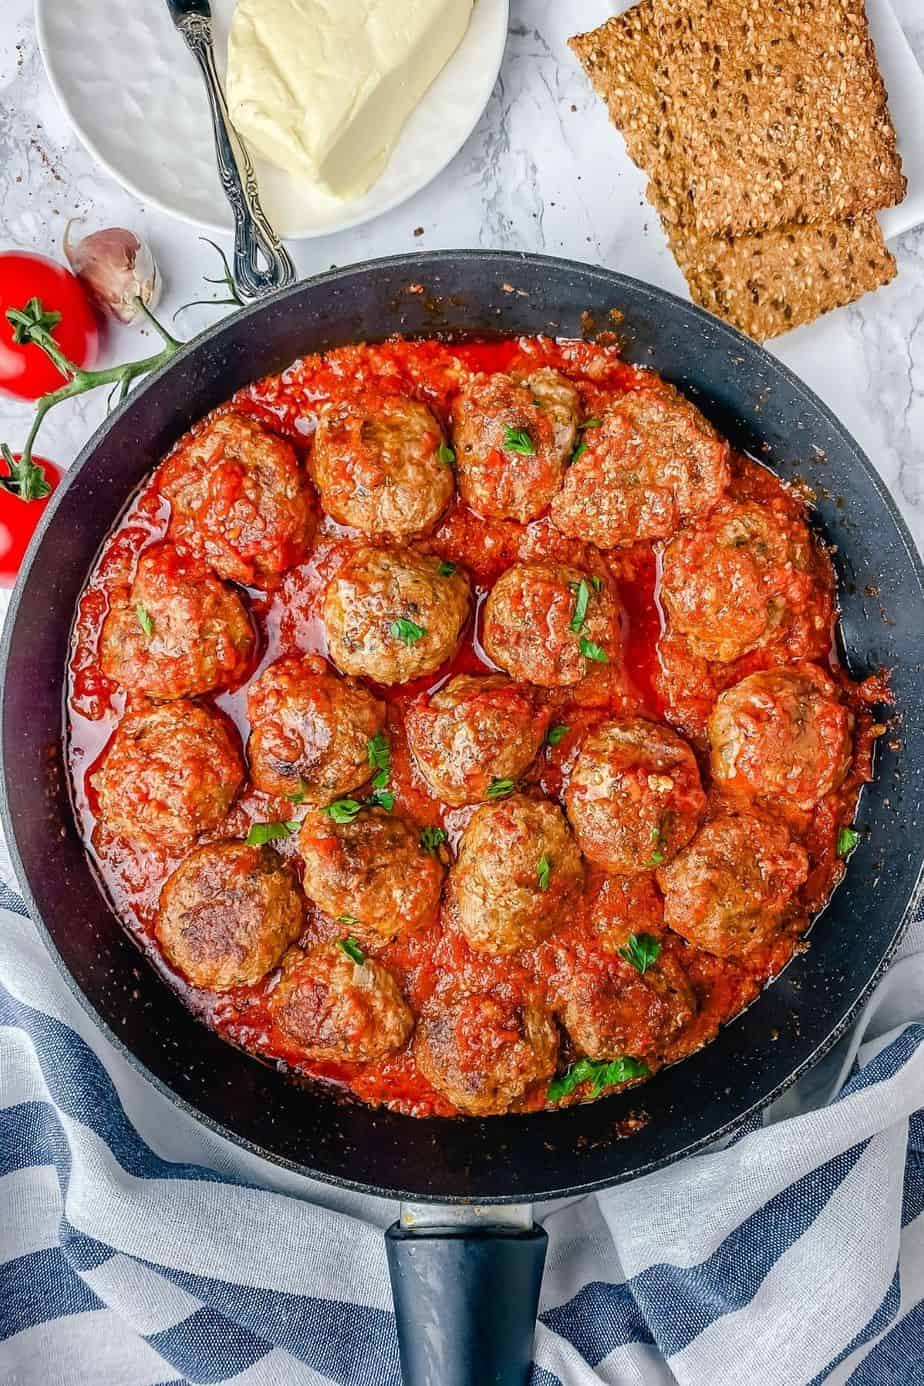 These easy meatballs in tomato sauce are made with pork and beef ground meat. A delicious blend of flavors and a dinner recipe that you can't go wrong with. Guaranteed to feed and satisfy your family or guests in no time - The Yummy Bowl